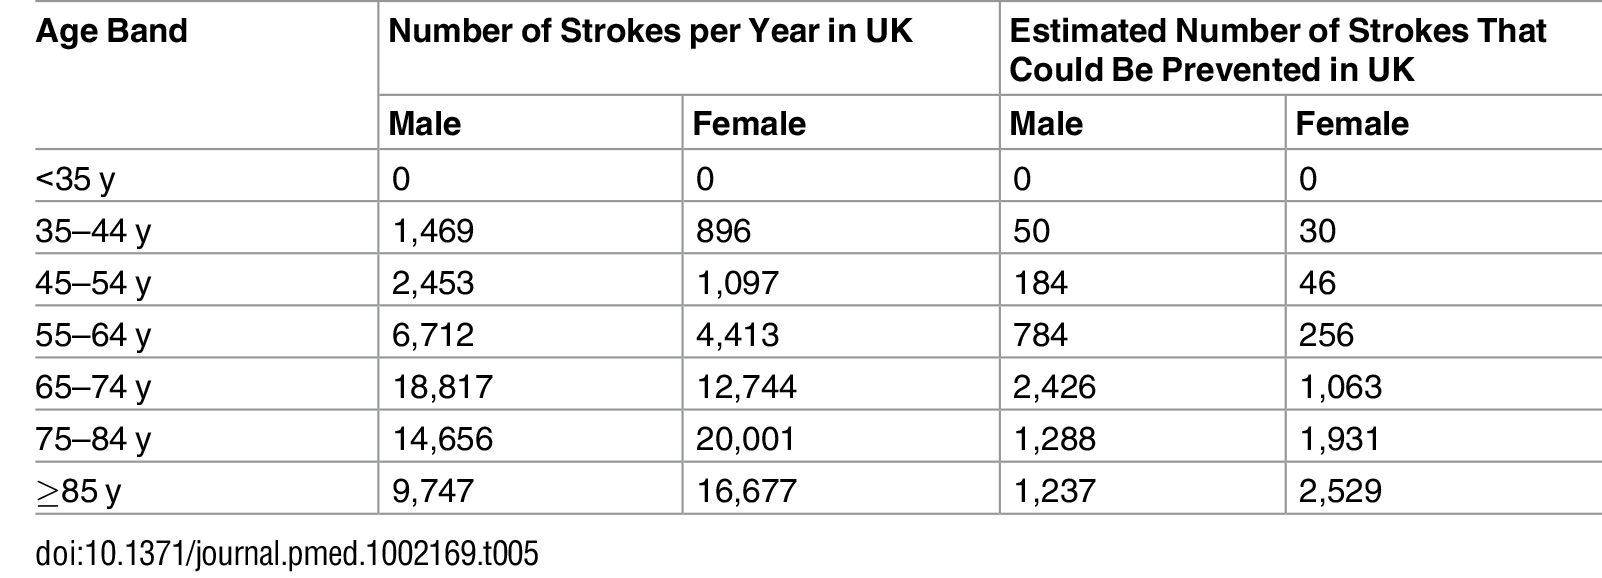 Estimated annual incidence of stroke and number of strokes that could potentially be prevented annually in the UK.